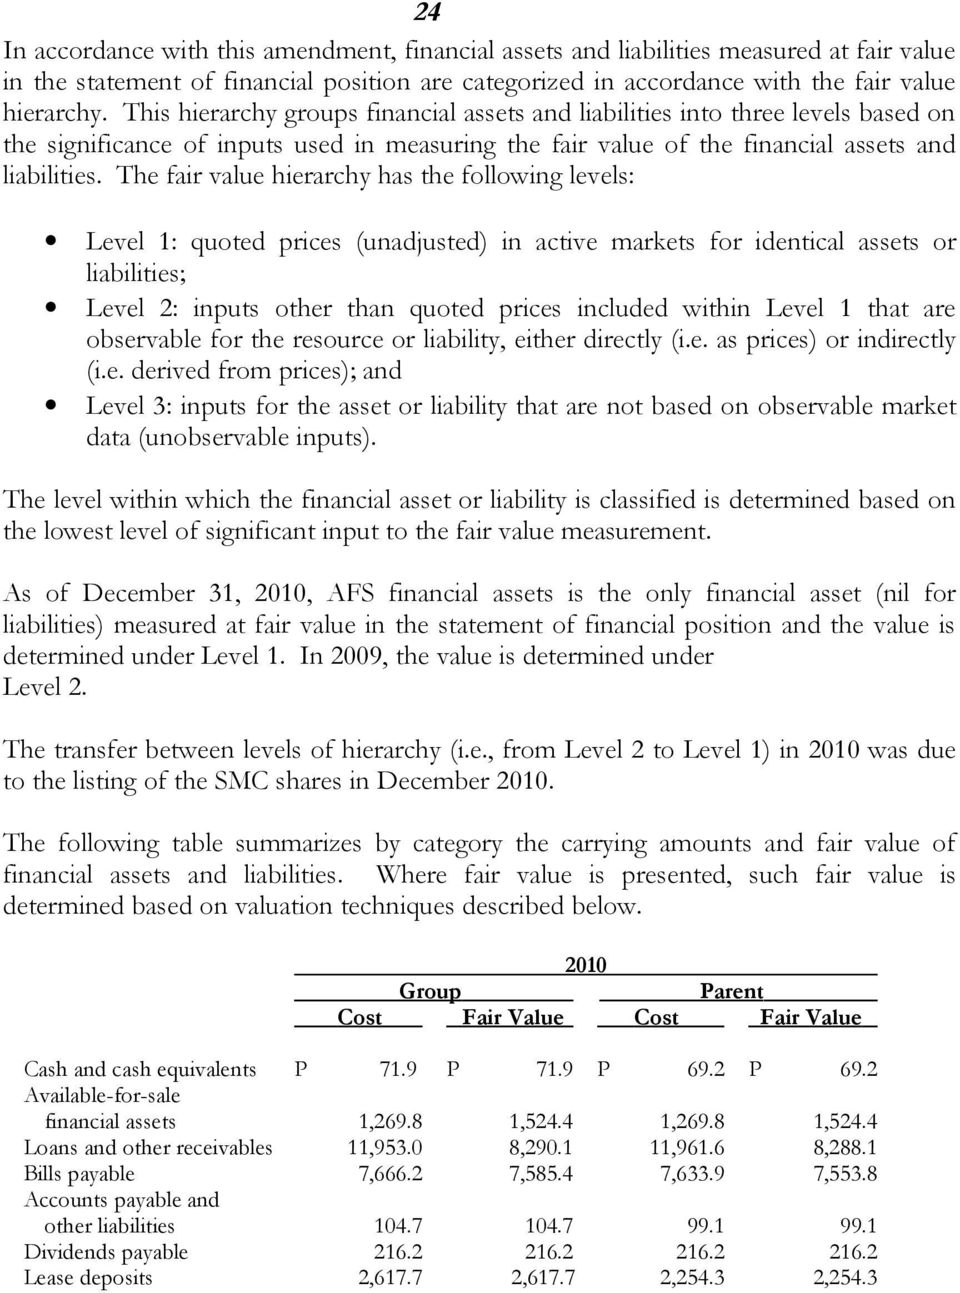 The fair value hierarchy has the following levels: Level 1: quoted prices (unadjusted) in active markets for identical assets or liabilities; Level 2: inputs other than quoted prices included within